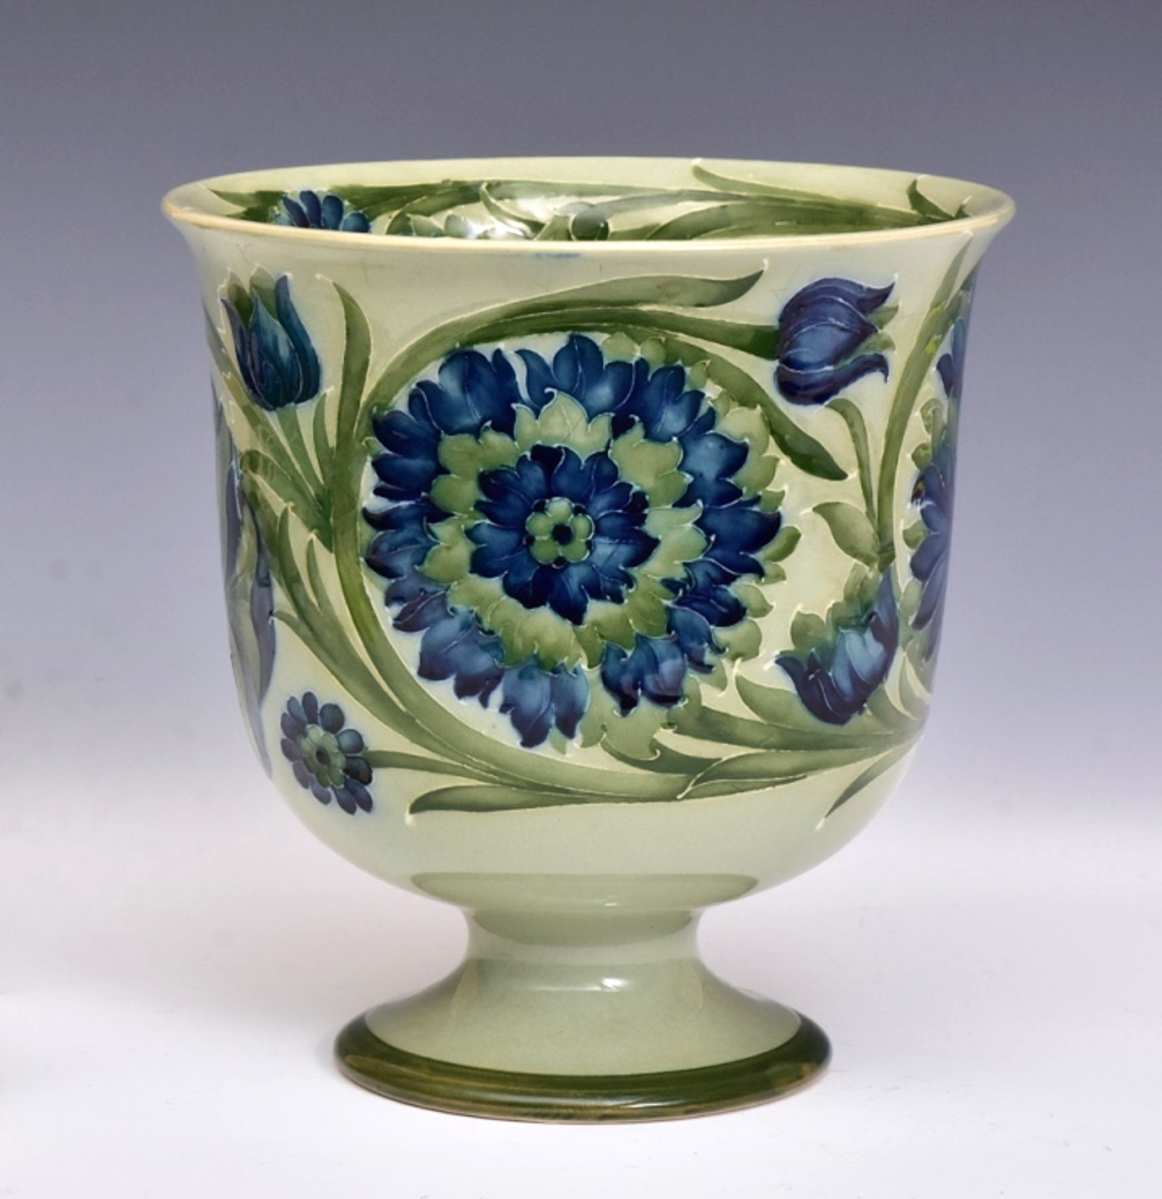 """The top lot of the Moorcroft collection, this 8-inch-high jardiniere in the """"Green Spanish"""" pattern took $6,600 above a $3,000 high estimate."""